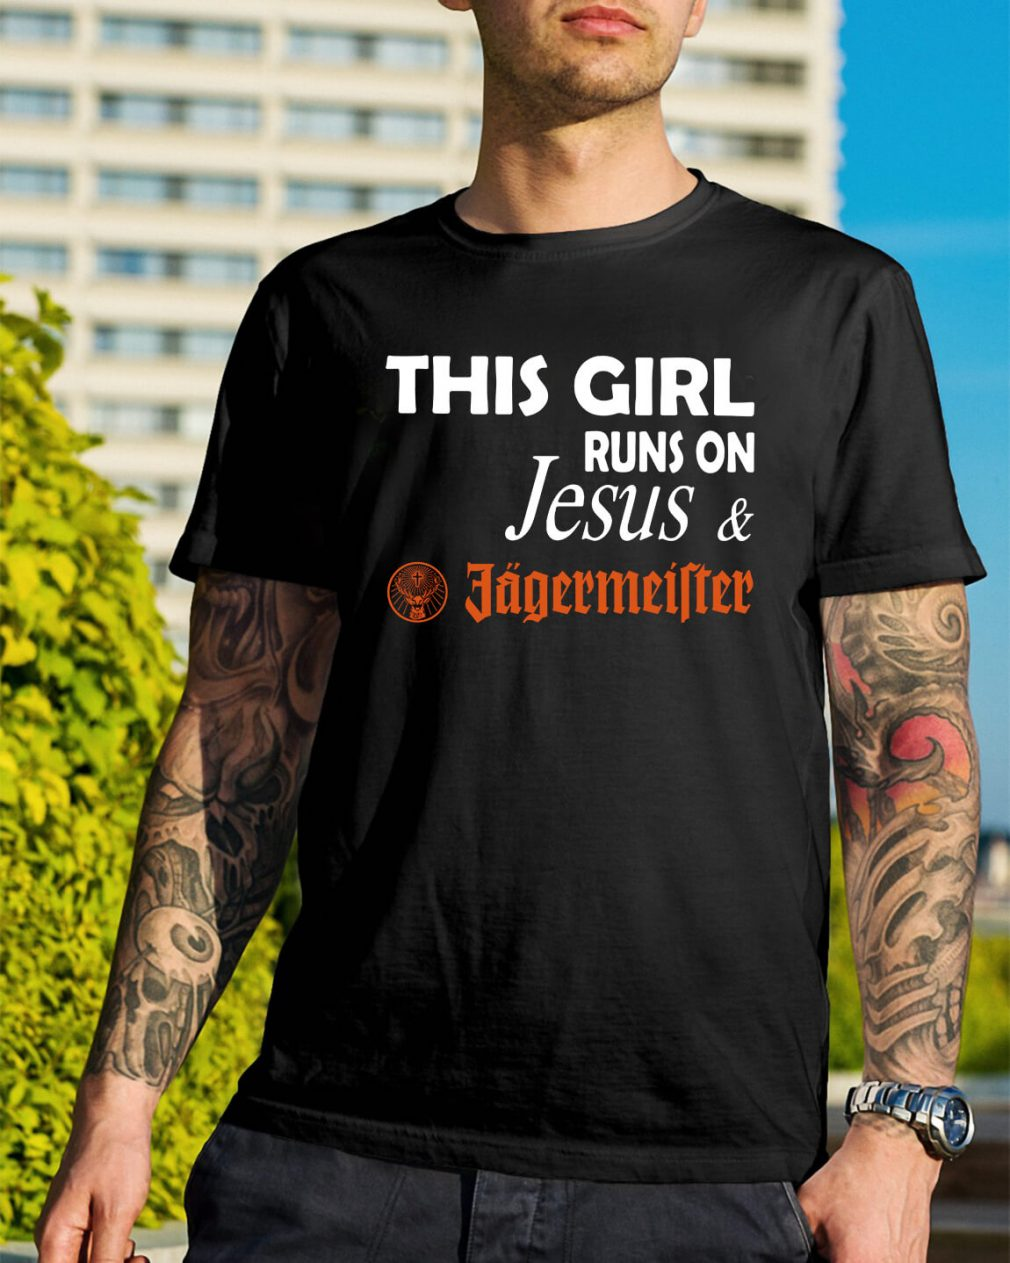 This girl runs on Jesus and Jagermeister shirt